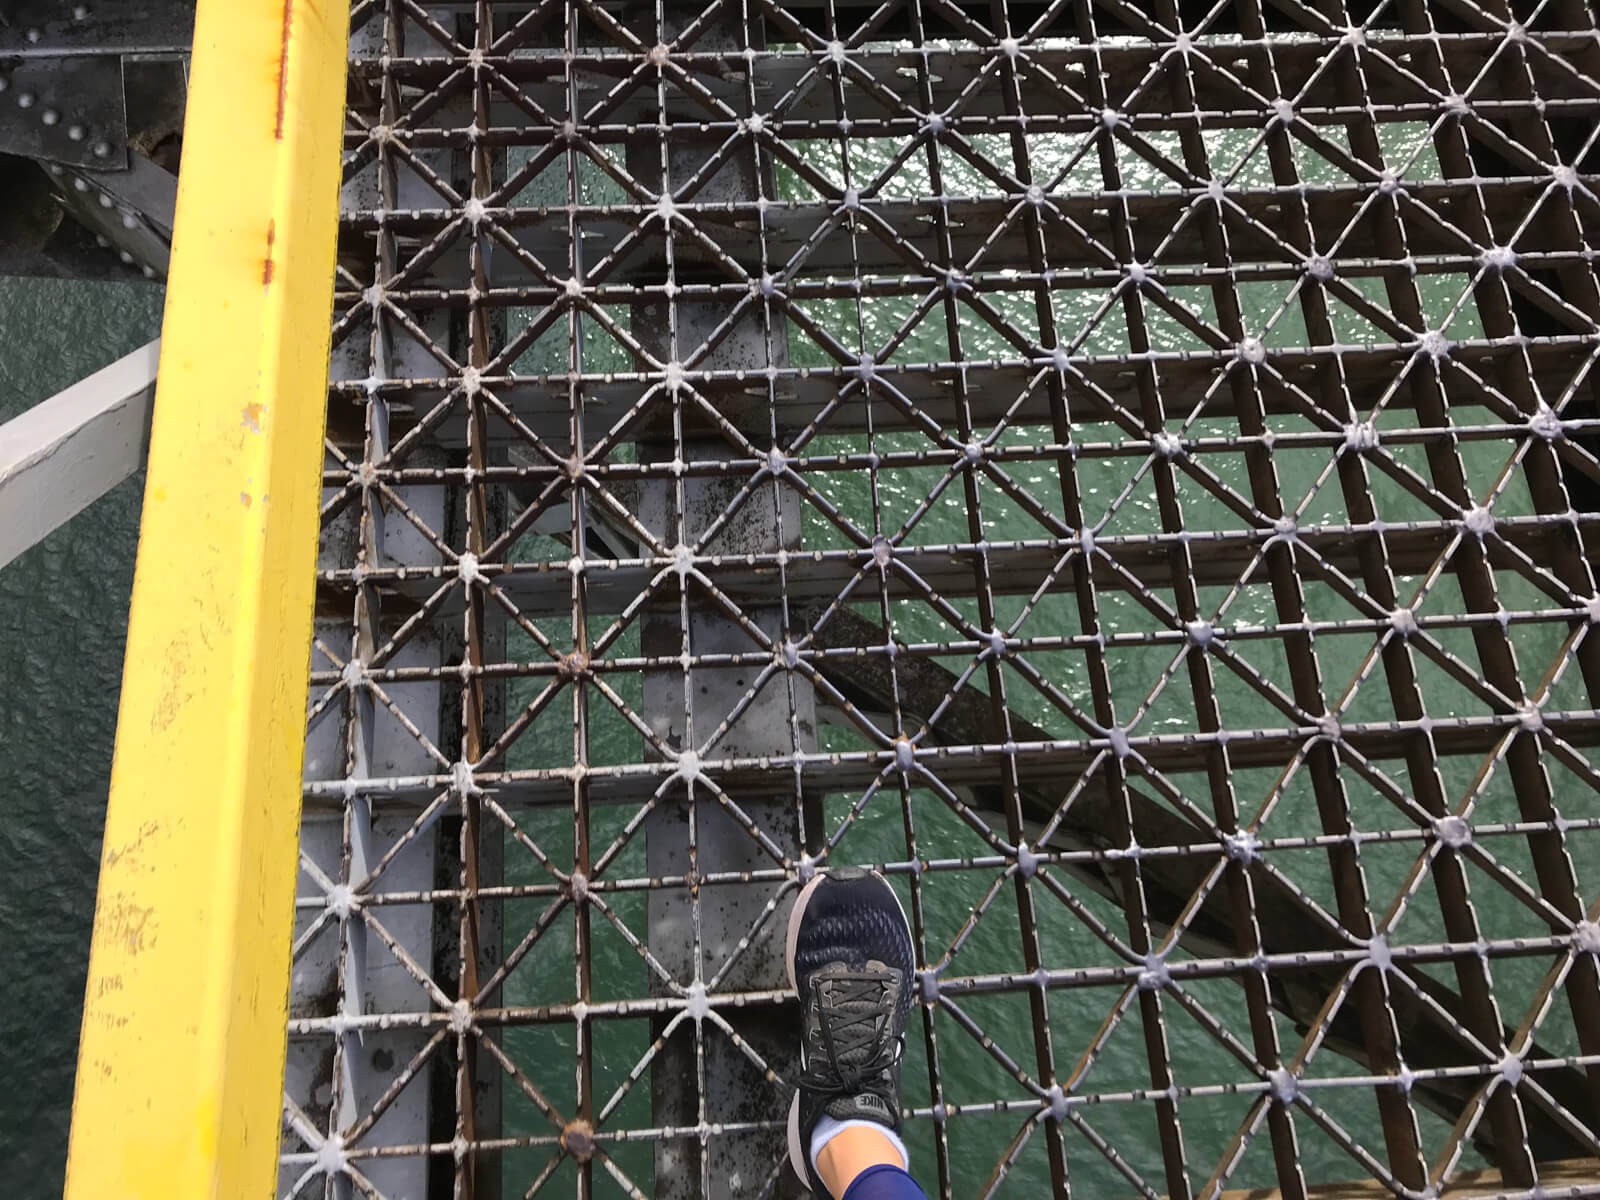 A birds-eye view of the walking surface of a bridge with water below. Someone's foot, wearing running shoes, is in the frame. The holes between the bridge structure look quite large.